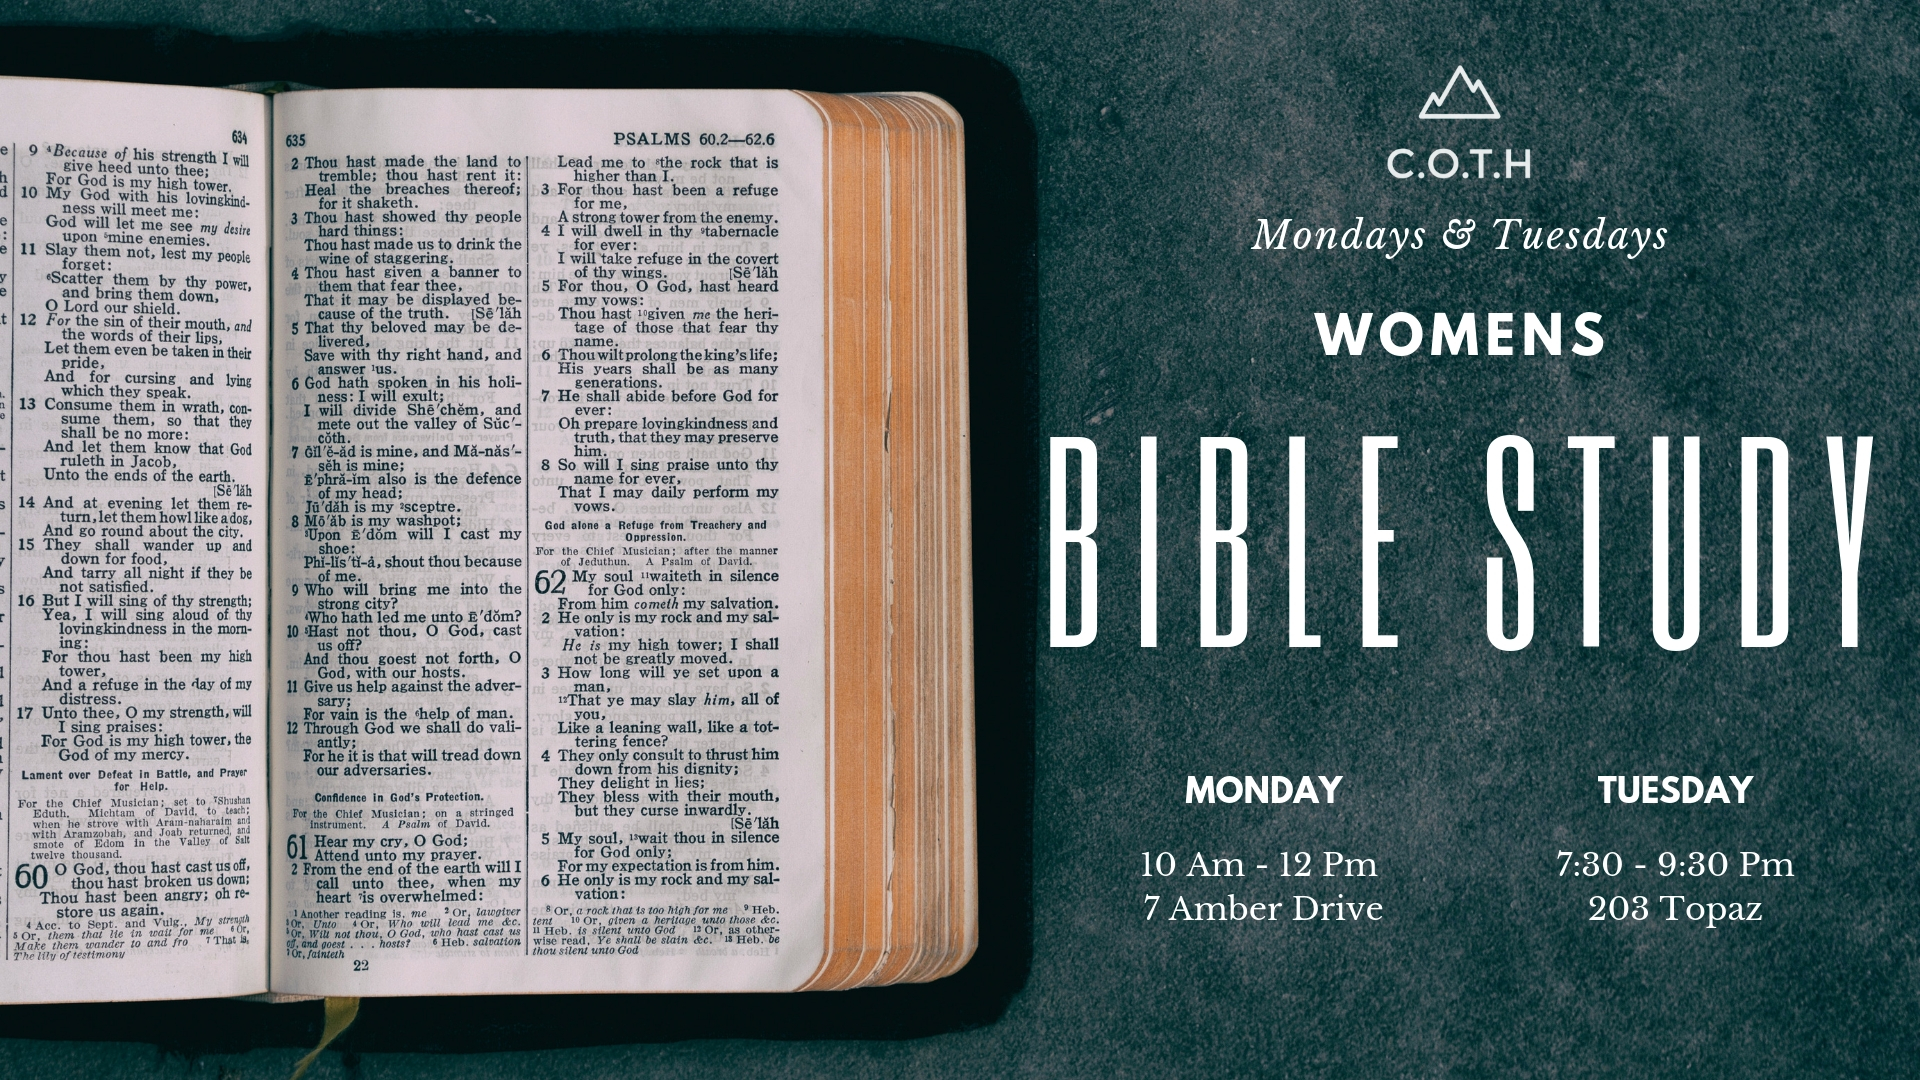 Women's Bible Study - Women Lifting up Women